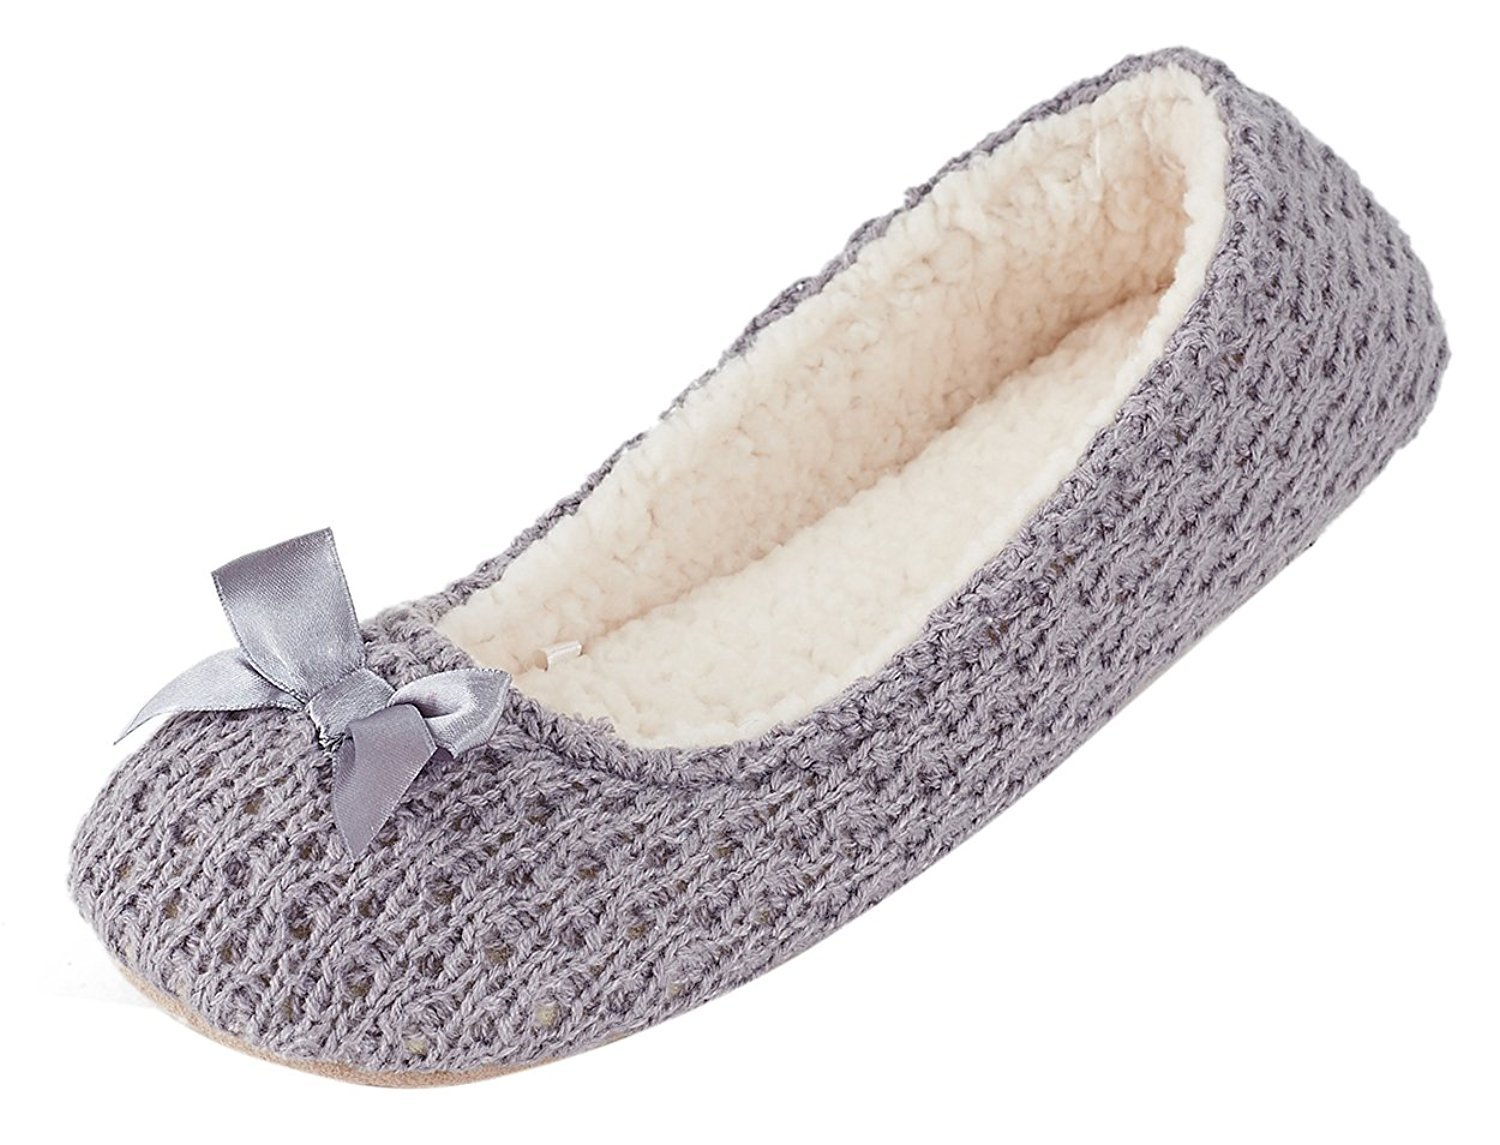 MIXIN Women's Ballerina Elegant and Comfortable Knitted Woolen Soft Sole Indoor Slippers Grey US Size 8